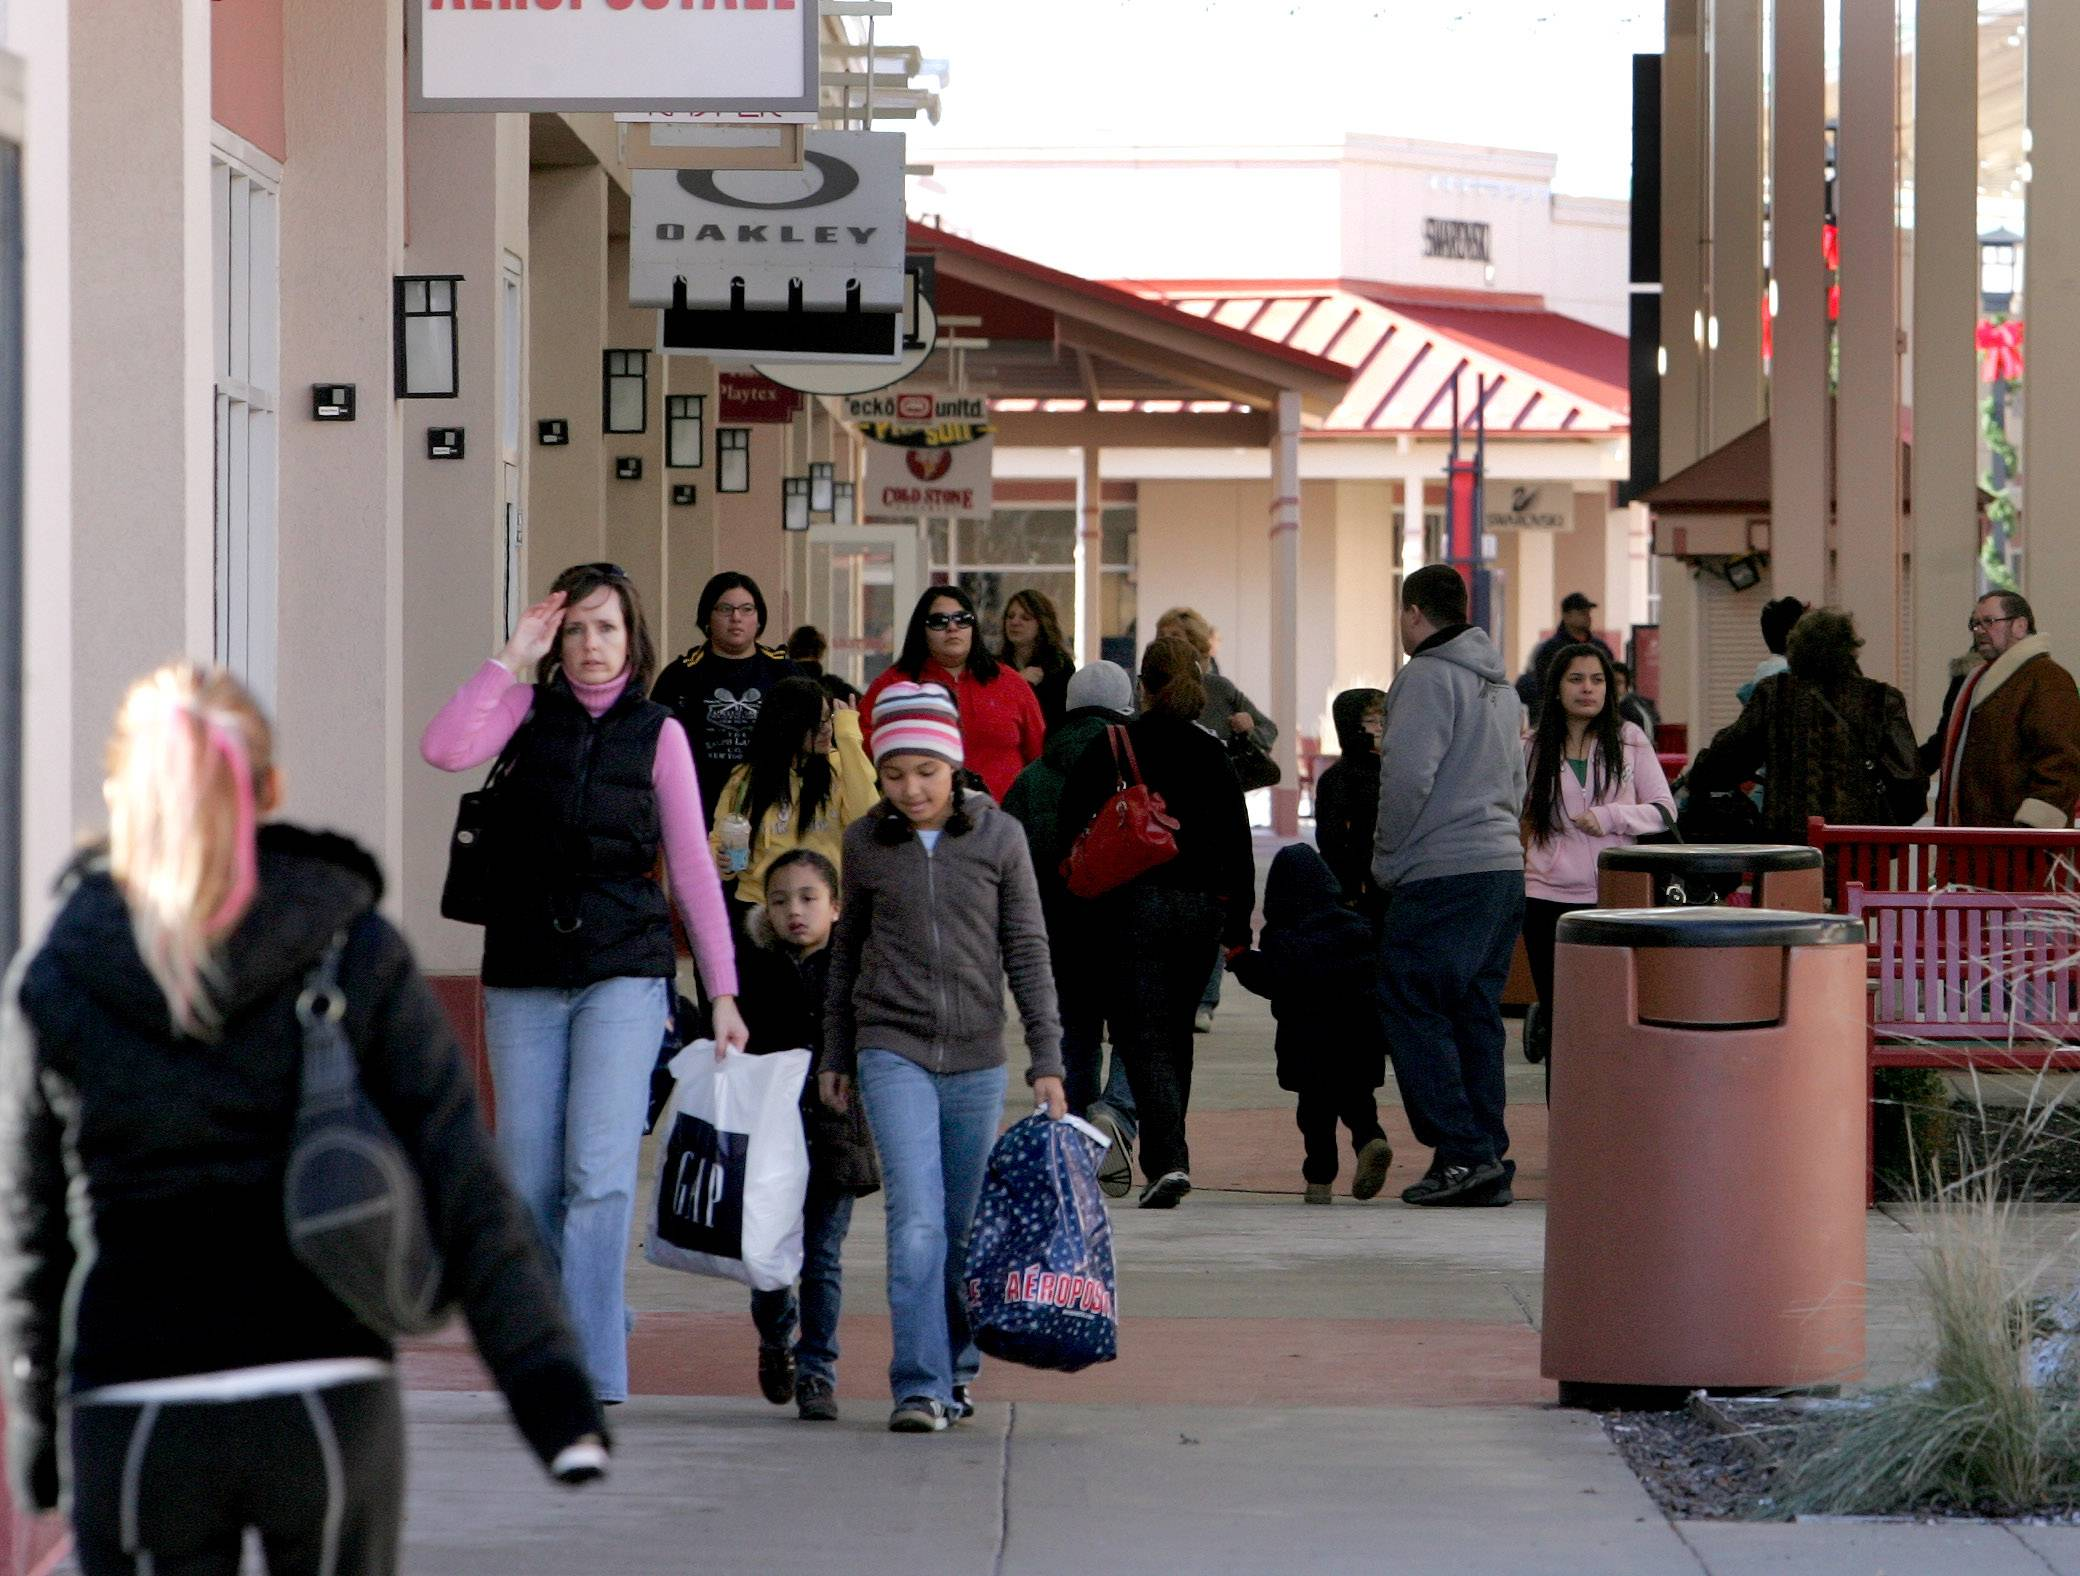 Chicago Premium Outlets in Aurora, one of the more successful outlet malls in the region, is looking to add about 294,000 square feet of retail space to its existing footprint of 437,342 square feet by next year.